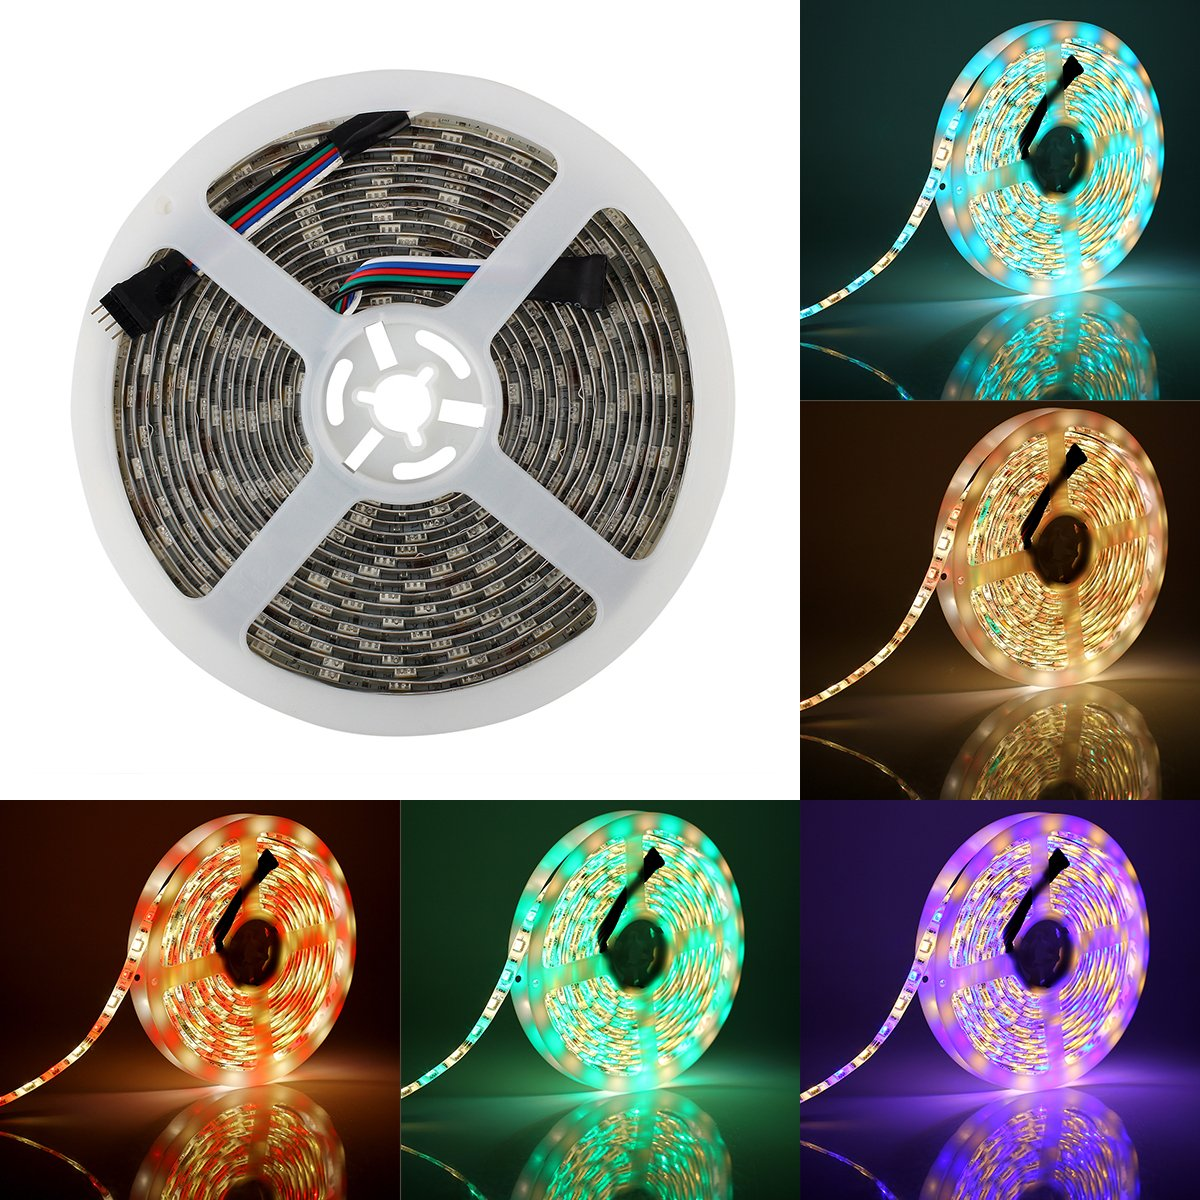 SUPERNIGHT RGBW LED Strip Light RGB Color Changing Rope Lighting with Warm White 3500K Color 16.4ft 300leds 5050 Tape Light (RGB + Warm White) by SUPERNIGHT (Image #1)